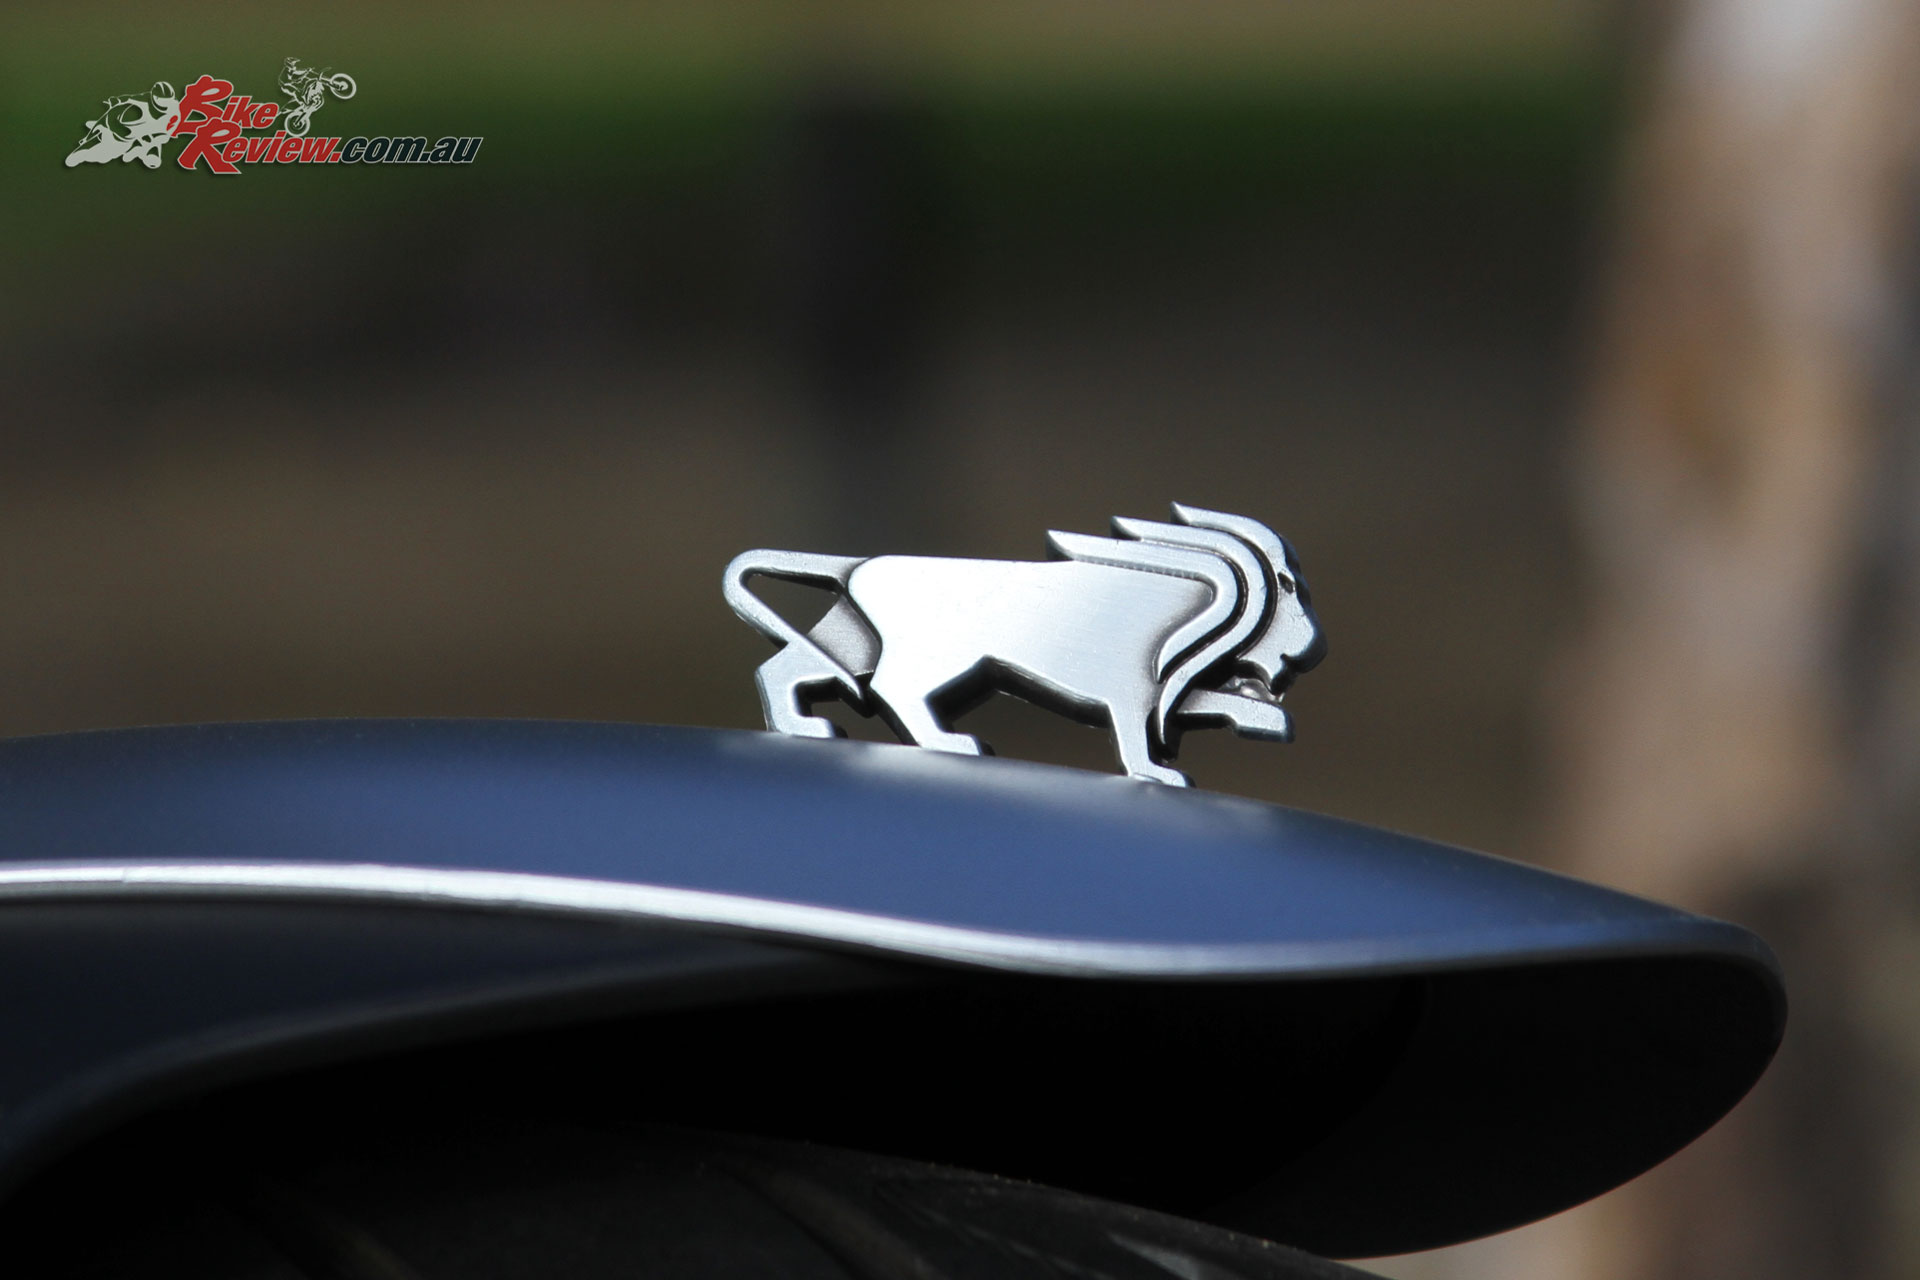 Benelli have put great effort into their badging and it really shows